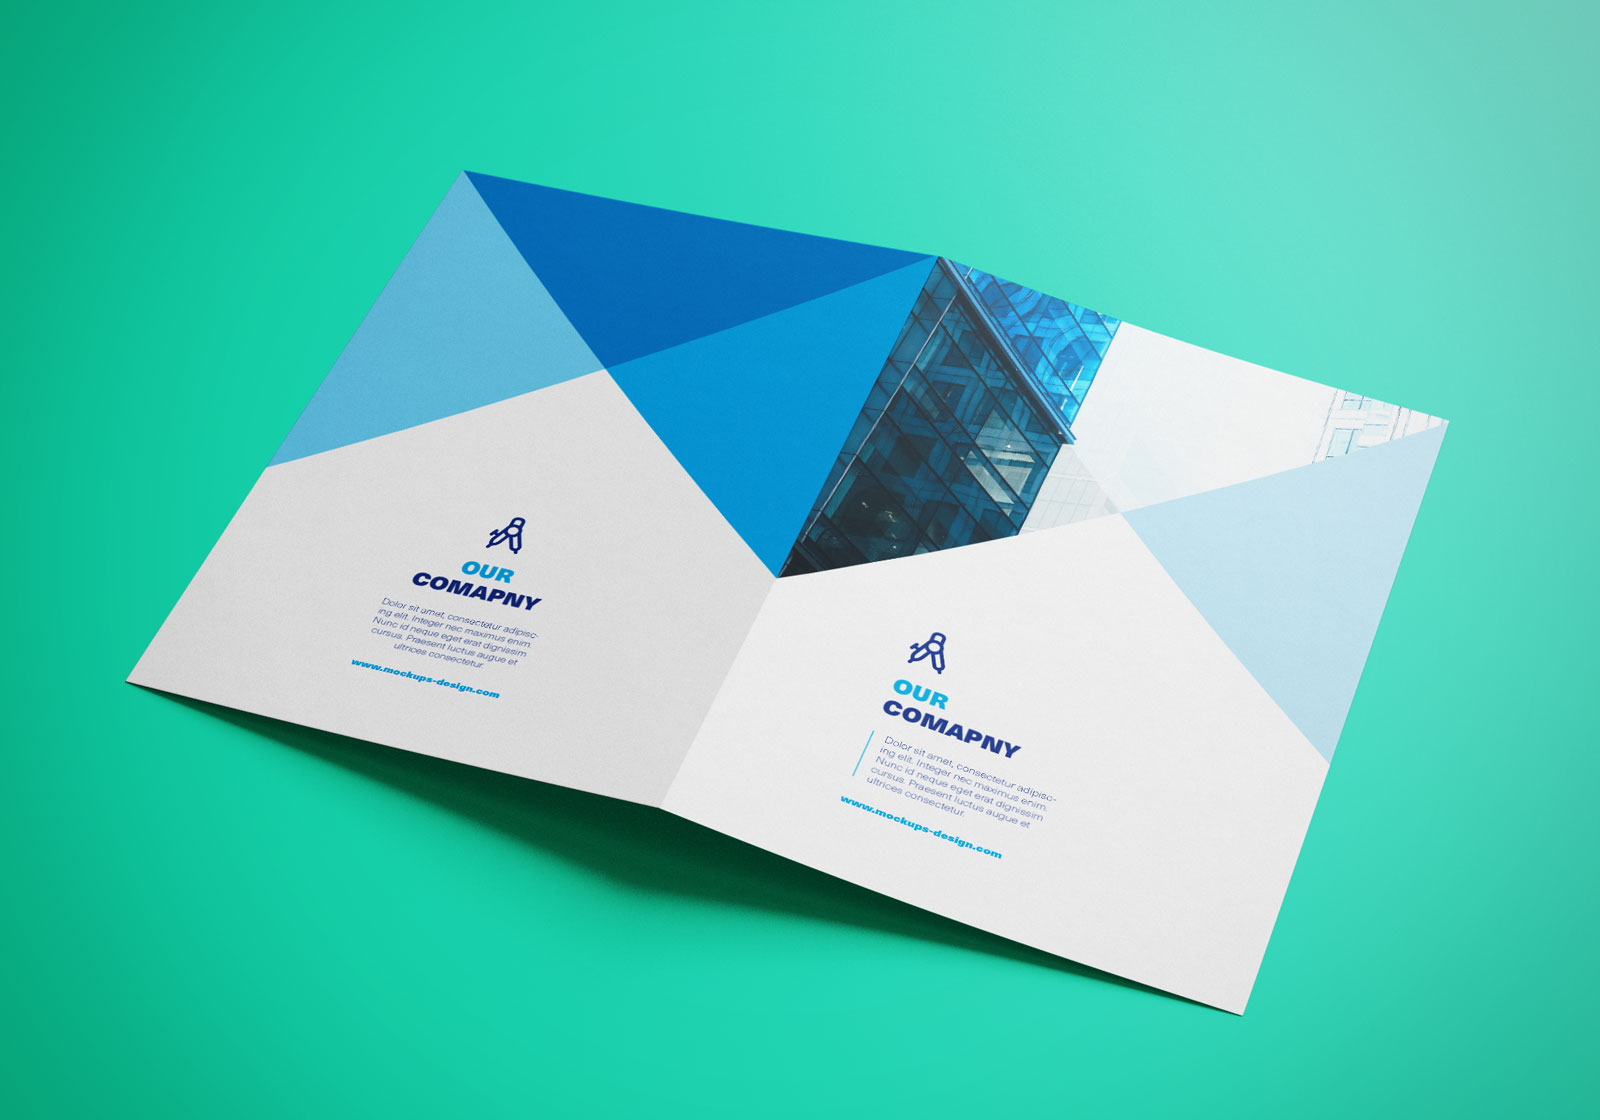 Free bi fold a4 brochure mockup psd good mockups for Brochure design mockup